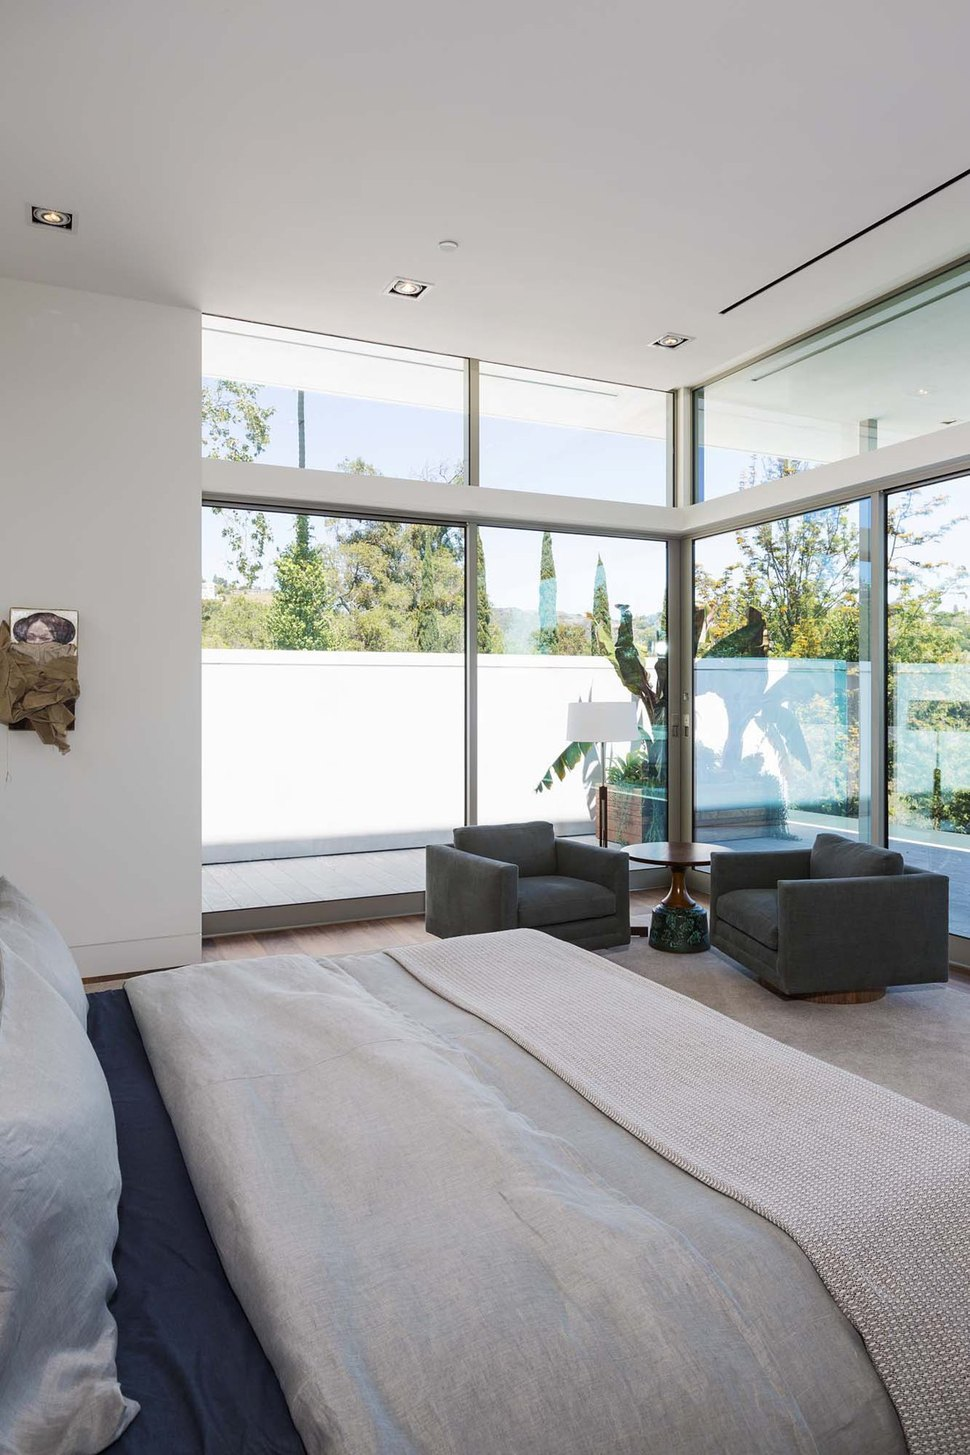 House design los angeles - View In Gallery Luxury Los Angeles House With Rooftop Decks 24